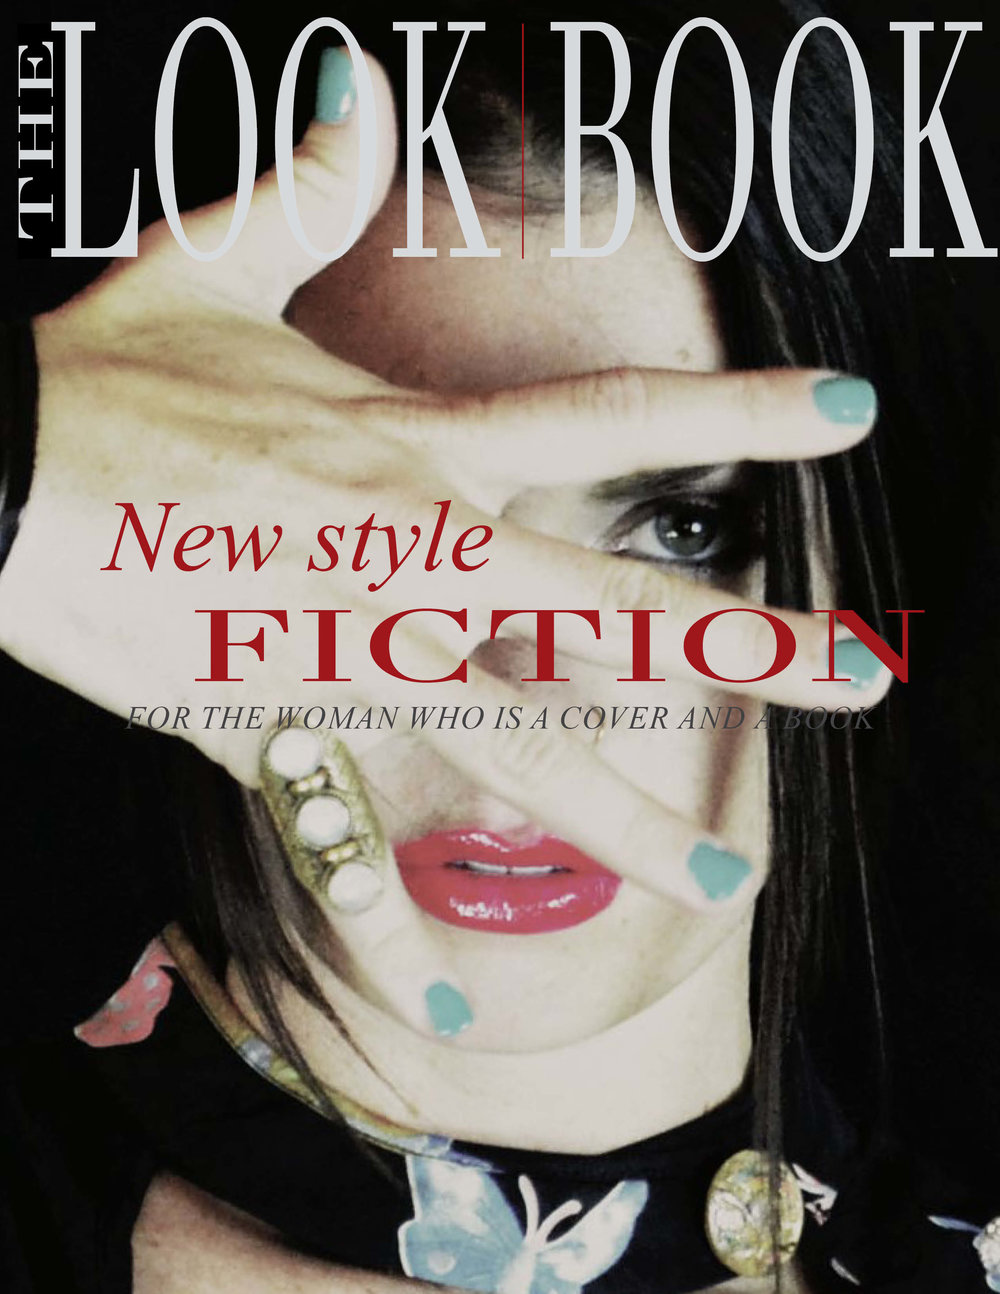 "A New Genre of EDITORIAL STYLE FICTION for the Woman who is a Cover and a Book CONCEPT: New style fiction combining the aesthetic and commercial properties of a fashion magazine with women's fiction. FORMAT: Looks like a magazine. Reads like a novel. CONTEXT: Tactically, a magazine and a novel are two separate entities, yet both rely on making an emotional connection. This commonality widens the publishing landscape when you consider the attributes of each medium in relation to each other. Splicing the two provides artistic and commercial advantages, most notably the creation of a new genre of digital media - one that humanizes fashion, creates an integrated brand marketing/commerce platform, presents literature in high style and achieves an intimate connection on a grand scale. Given the significance of social media in today's cultural construct, the LOOKBOOK provides a platform for women to understand image consciousness beyond a ""selfie,"" and a conversation longer than a snapped chat. STYLE: Chapter design features pictorial and visual treatments that communicate the mood and integrity of the writing, the brand, and item featured. Magazine style three column layout accommodates computer screens, e-readers, tablets and cell phones. Direct links to sponsors enable commerce and social media networking. VISION: With a cohesive focus on marketing and content development, creative and promotional initiatives will be closely linked throughout the development processes. This will require a singular vision - to take publishing into a radically new modern direction. THEME: The novel begins with a ""Fashion Statement"" professed by a thirty year old woman searching for something to wear. As she searches through her closet, she sees her life unfold piece by piece in a story of tangible memories. This reflection on herself-maintained image, at the crux of her identity crisis, becomes a fashion awakening as she realize that invention is a necessity. We are all linked by the common thread of change. Fashion then becomes a truth revealing more than outward presentation. Her closet becomes a memoir and the basis for a full color, high style fictional series that defines what it means to ""get changed."" CONTENT: Chapters are written from two perspectives, with the objectivity of third person narrative and the intimacy of the first person voice. This is accomplished through font treatments and enables interactive theatrical readings. The story takes you through the protagonist's professional and romantic conquests, her bright ideas and illusions, perceived successes, good intentions and the particulars of a carefully planned wardrobe. Then there is the work itself, the words of a brave woman who is not afraid to rediscover her dreams through disappointments, her triumphs through heartache and her identity through her ideals. In an emotional, lyrical style she presents herself as if looking into a mirror held in your hands. She speaks directly to the reader as a character represented in pictures and as a woman with style, emotions, thoughts and a heart worn on her sleeve. PUBLISHING: The synergy between the content, commercial application, visual and interactive features of this book lends to its strength. This is a modern novel intended for digital editorial style. Each chapter presents an article of clothing or accessory as an authentic piece of history in the heroine's life, and with it marketing opportunity that goes beyond product placement or brand endorsement. Fashion is the central theme of the story, its style and subsequently, its strategy. Presented and marketed as a photographic fictional series, the LOOKBOOK offers a dimensional literary experience that proves fashion is not frivolity, a magazine is not mere gloss, and reading is not out of style."